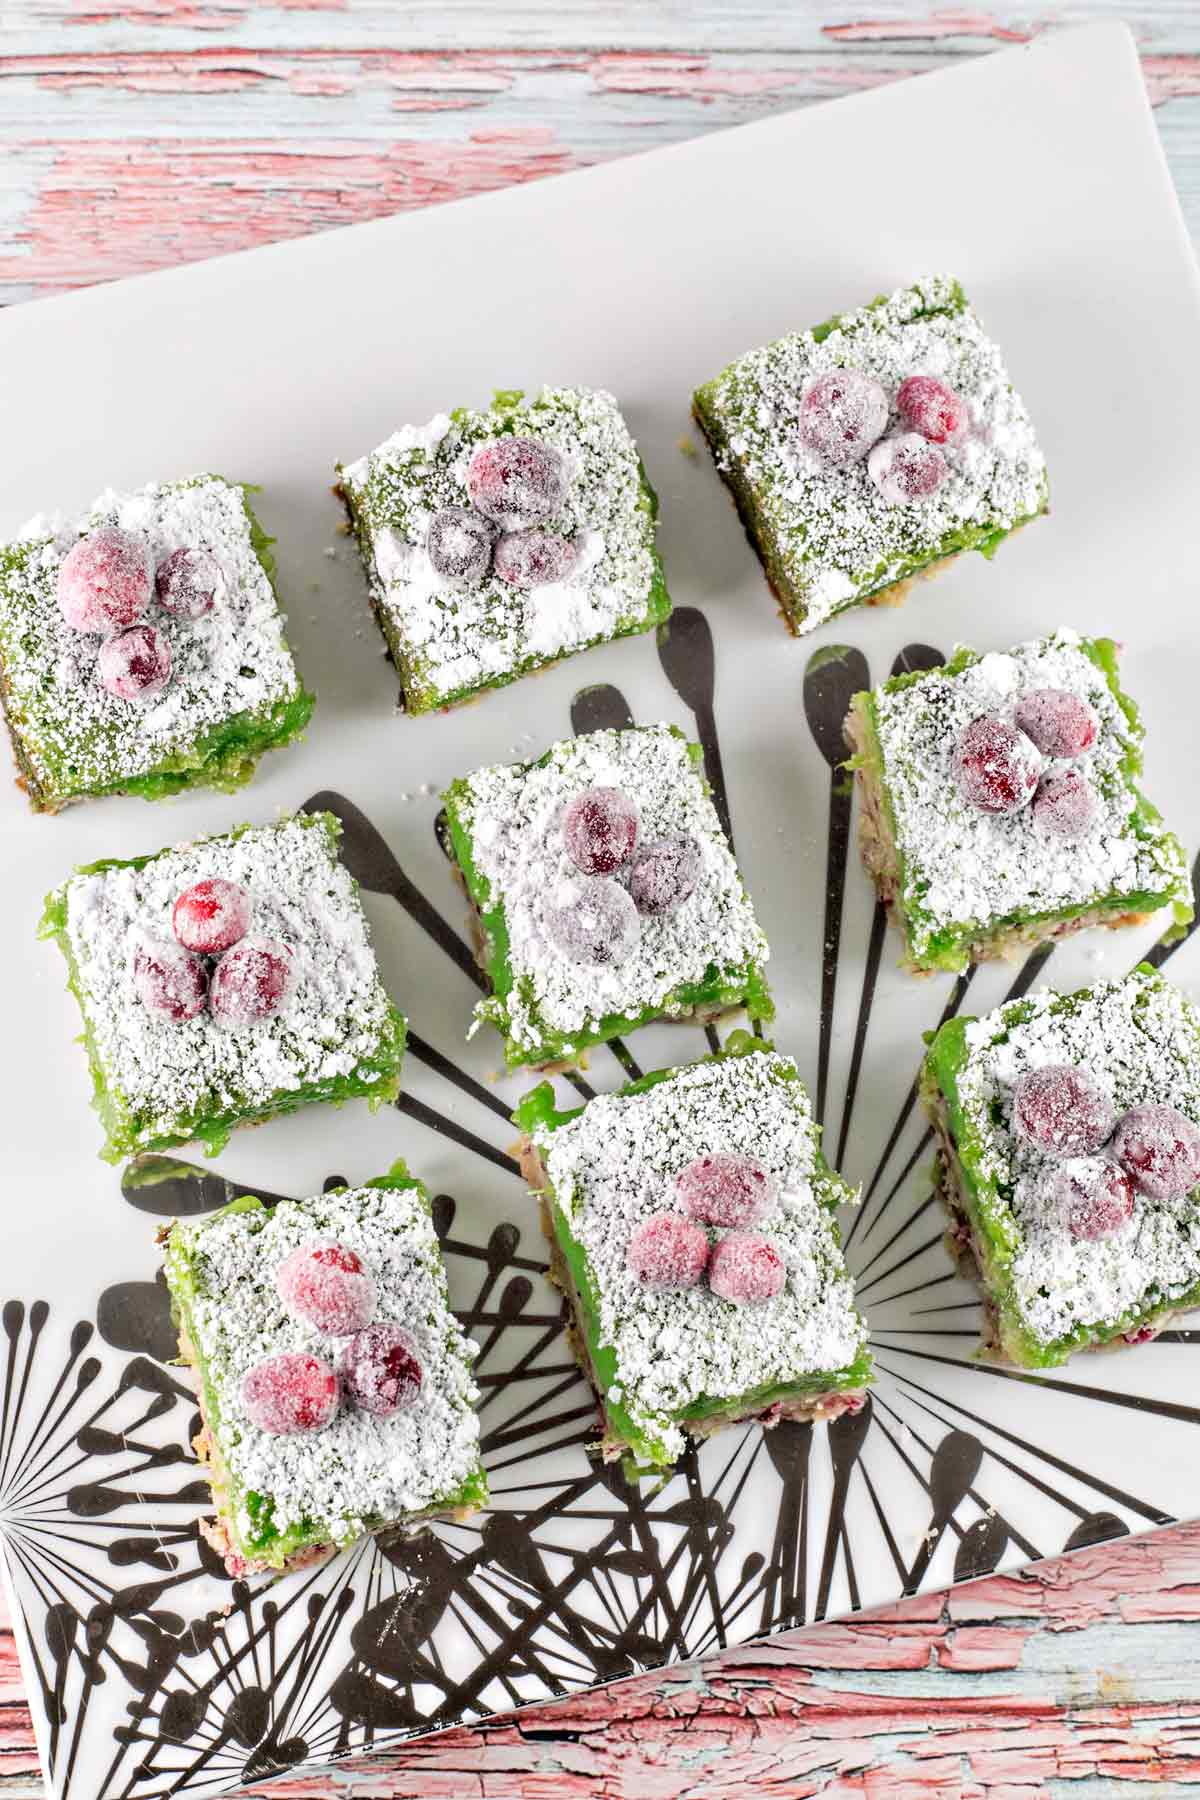 cranberry lime bars topped with sugared cranberries arranged on a serving dish